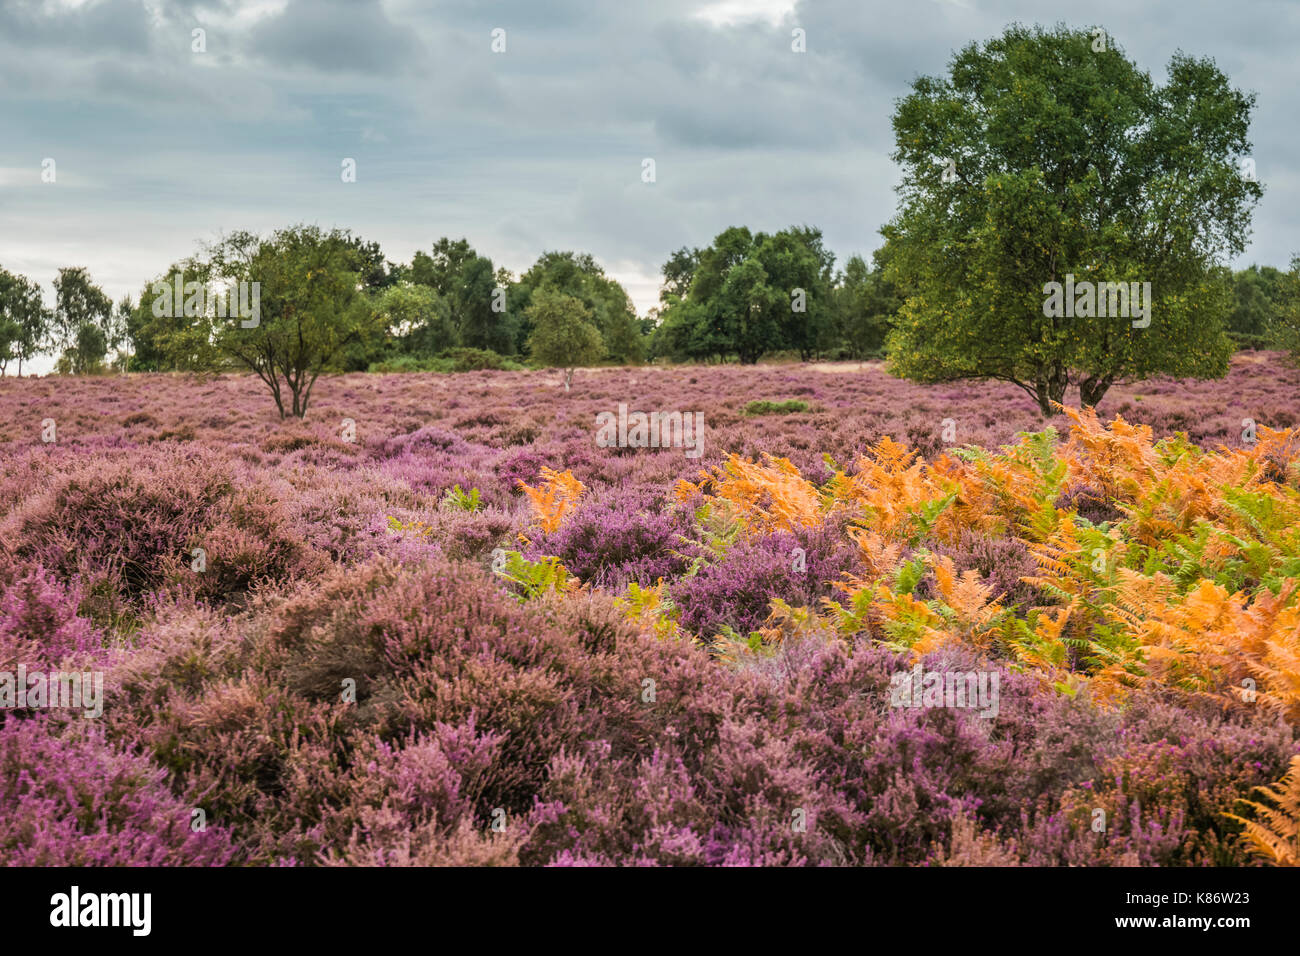 Heathland during autumn at Minsmere nature reserve, Suffolk, UK. Stock Photo